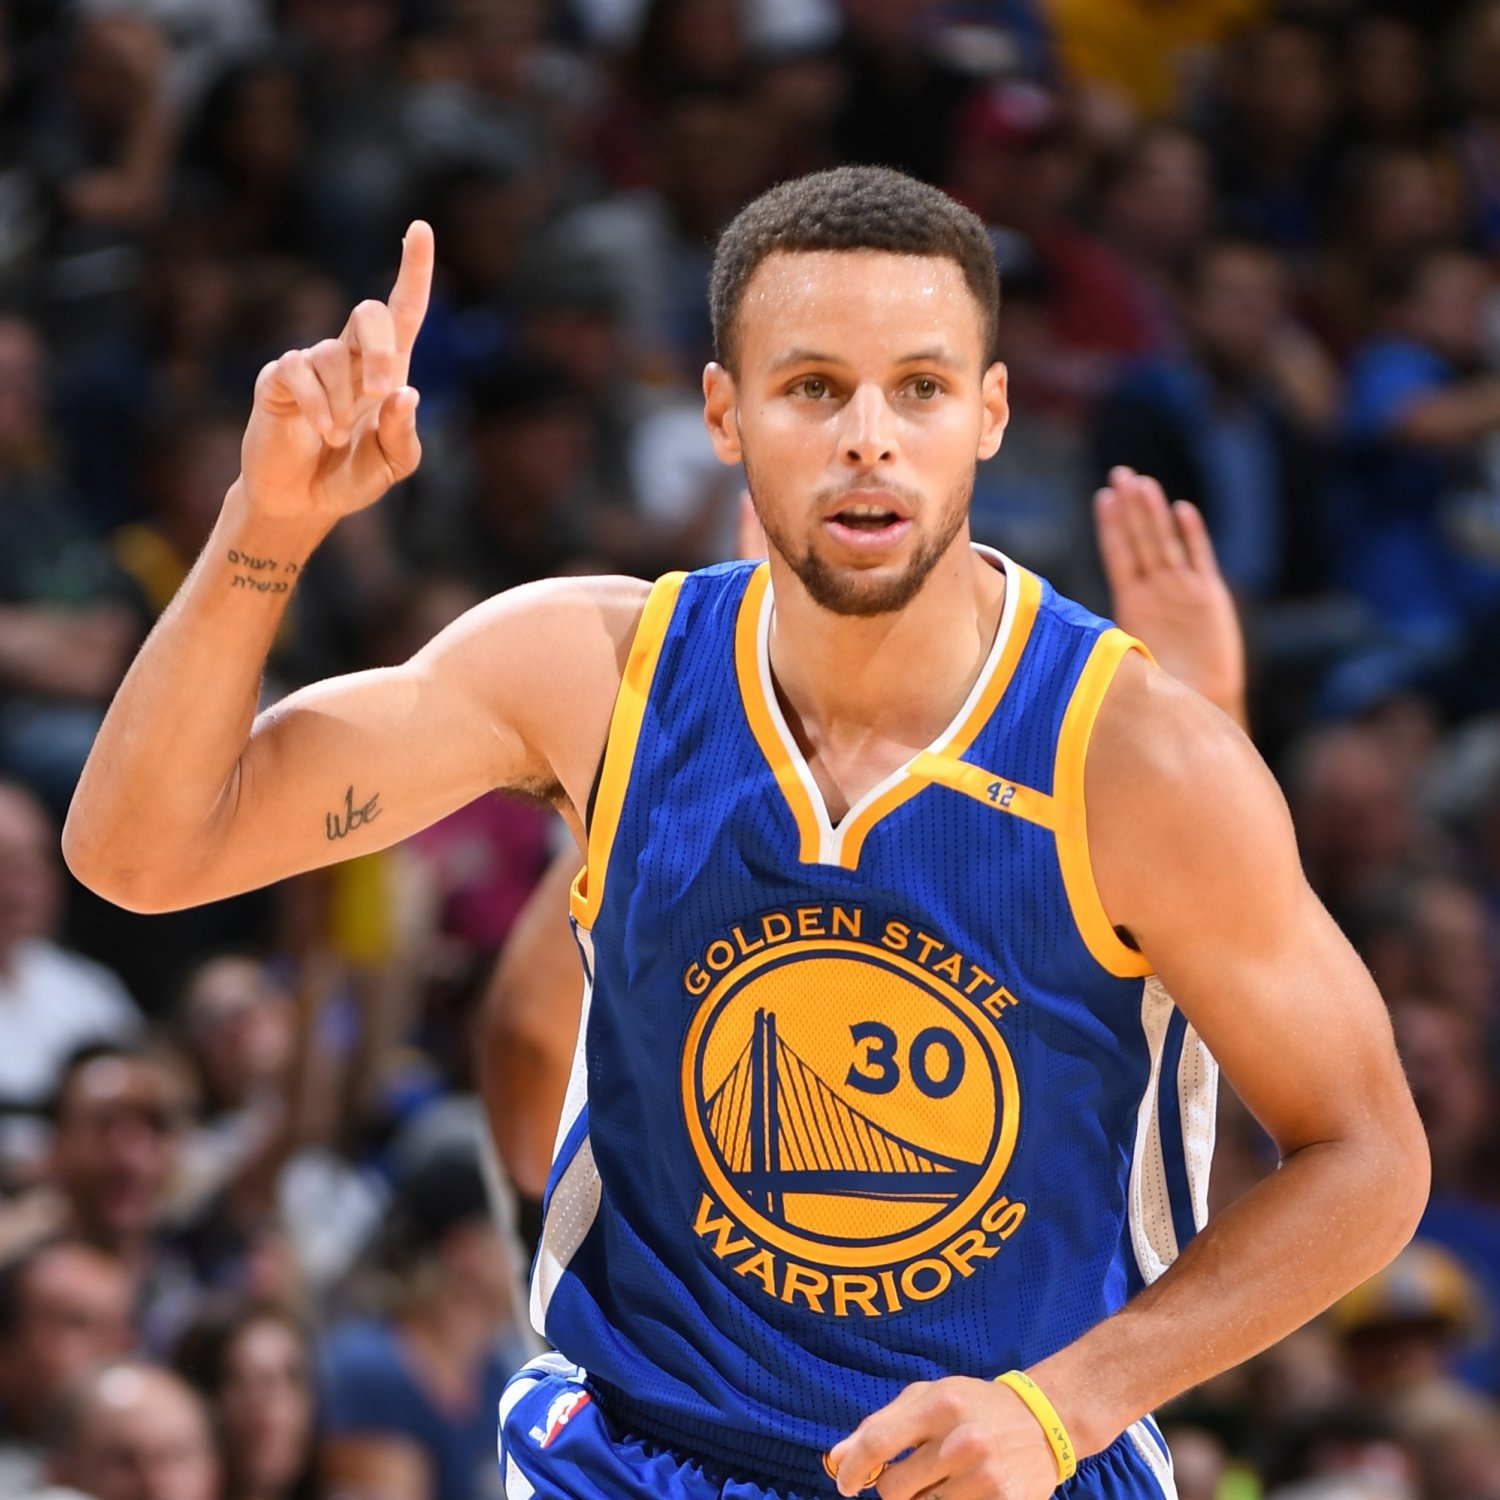 Denver Nuggets Vs Golden State Warriors Game 6 Score: Related Articles